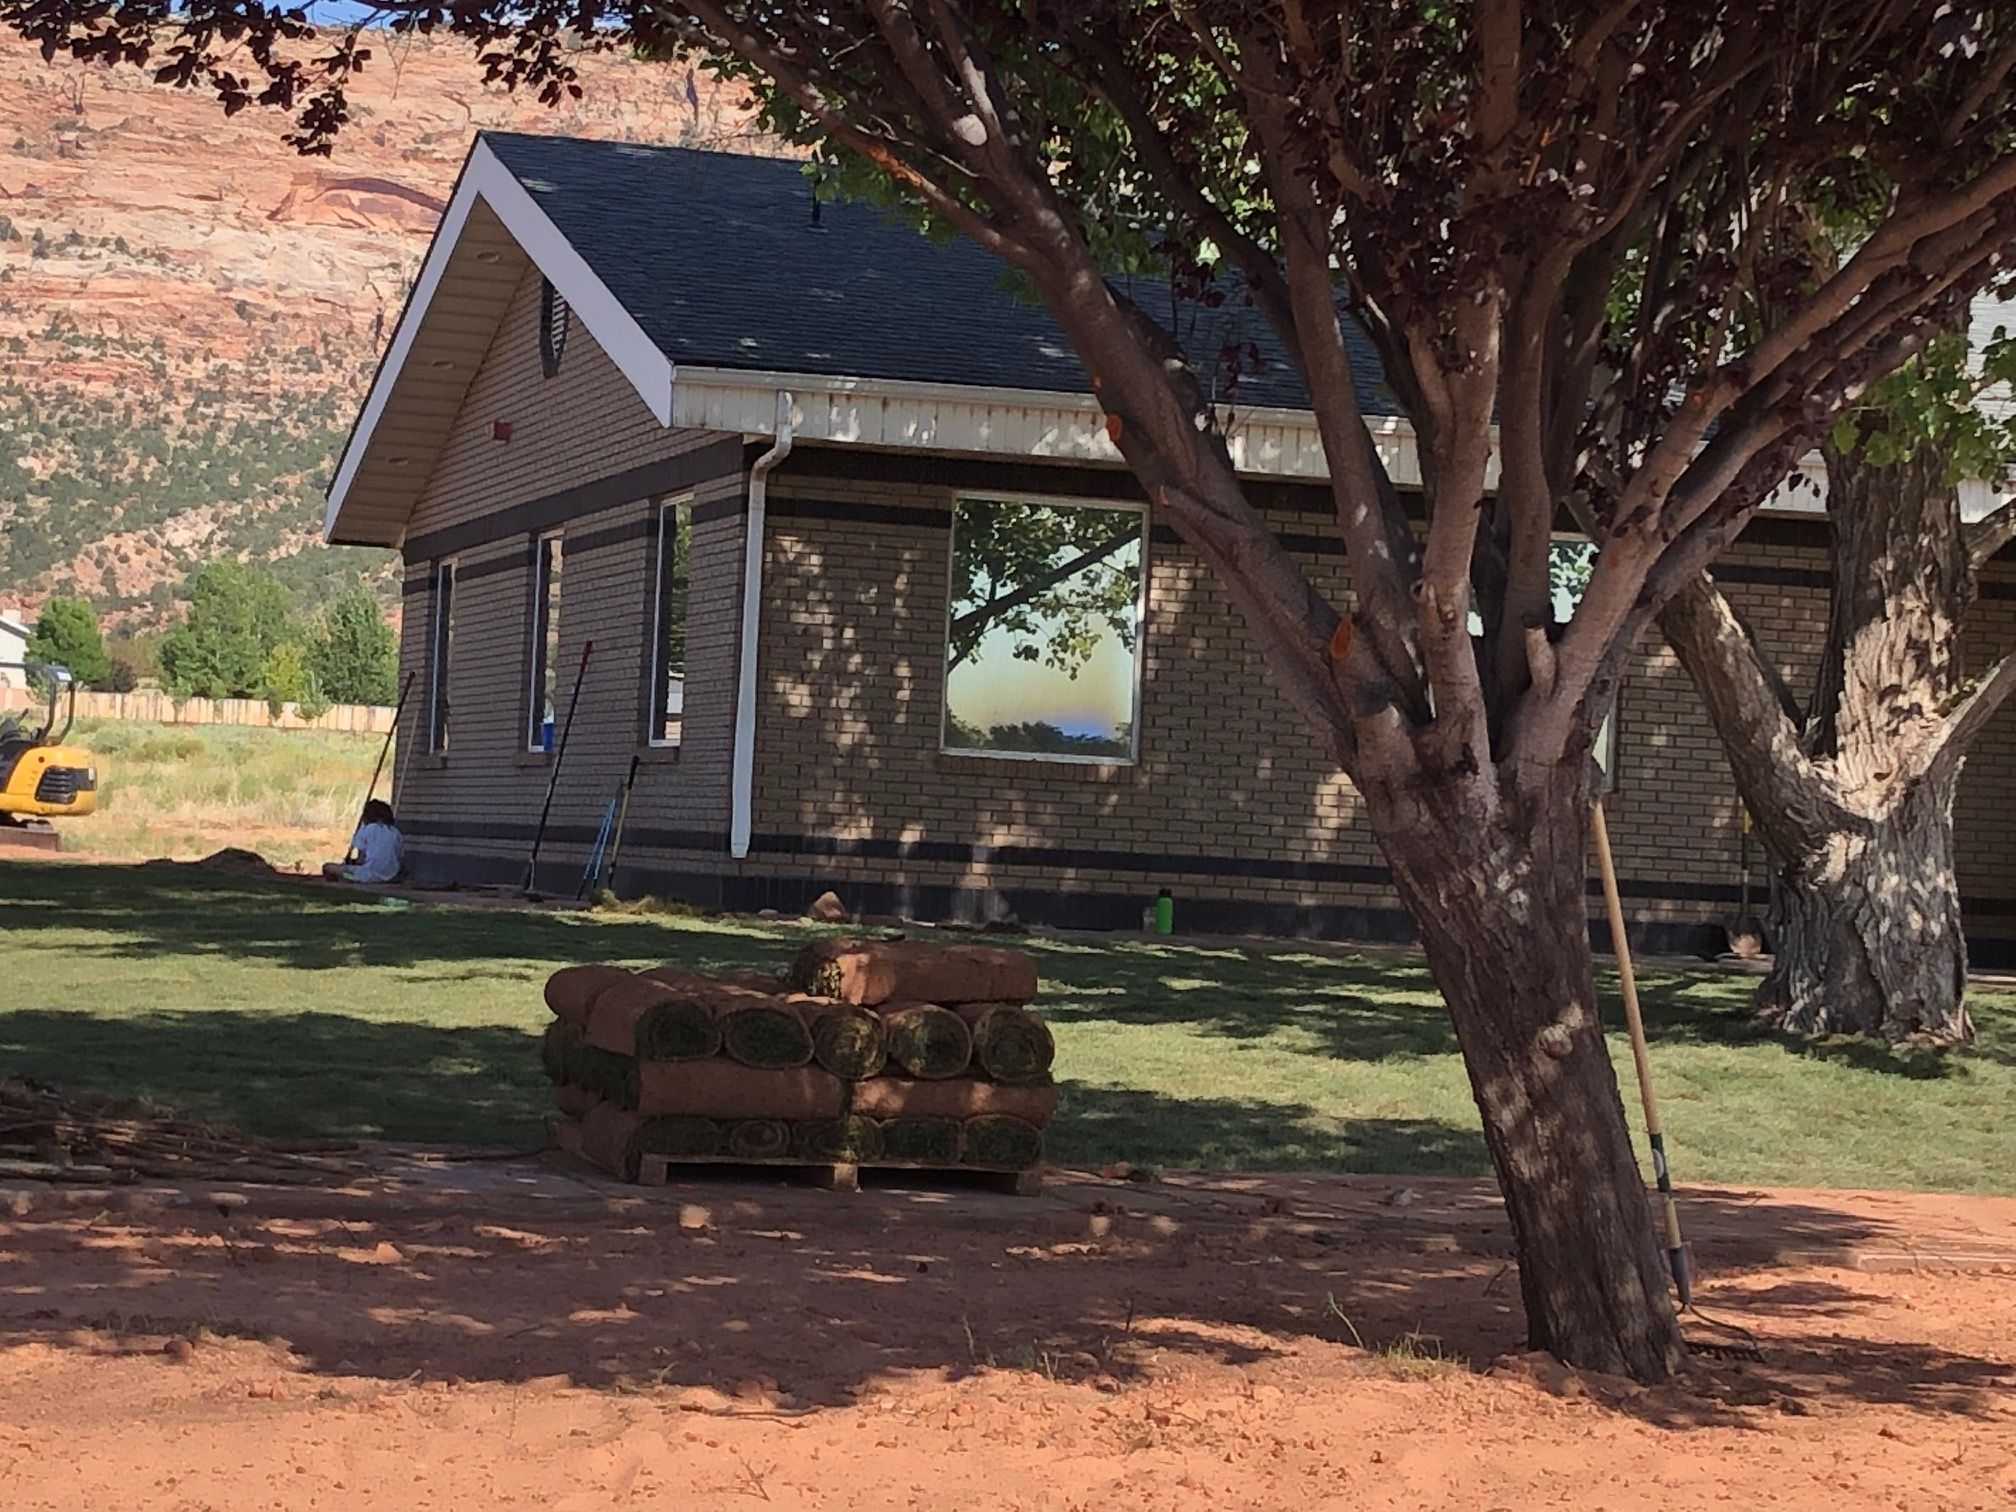 New sod at the Creek Valley Health Center in polygamist community of Colorado City, AZ